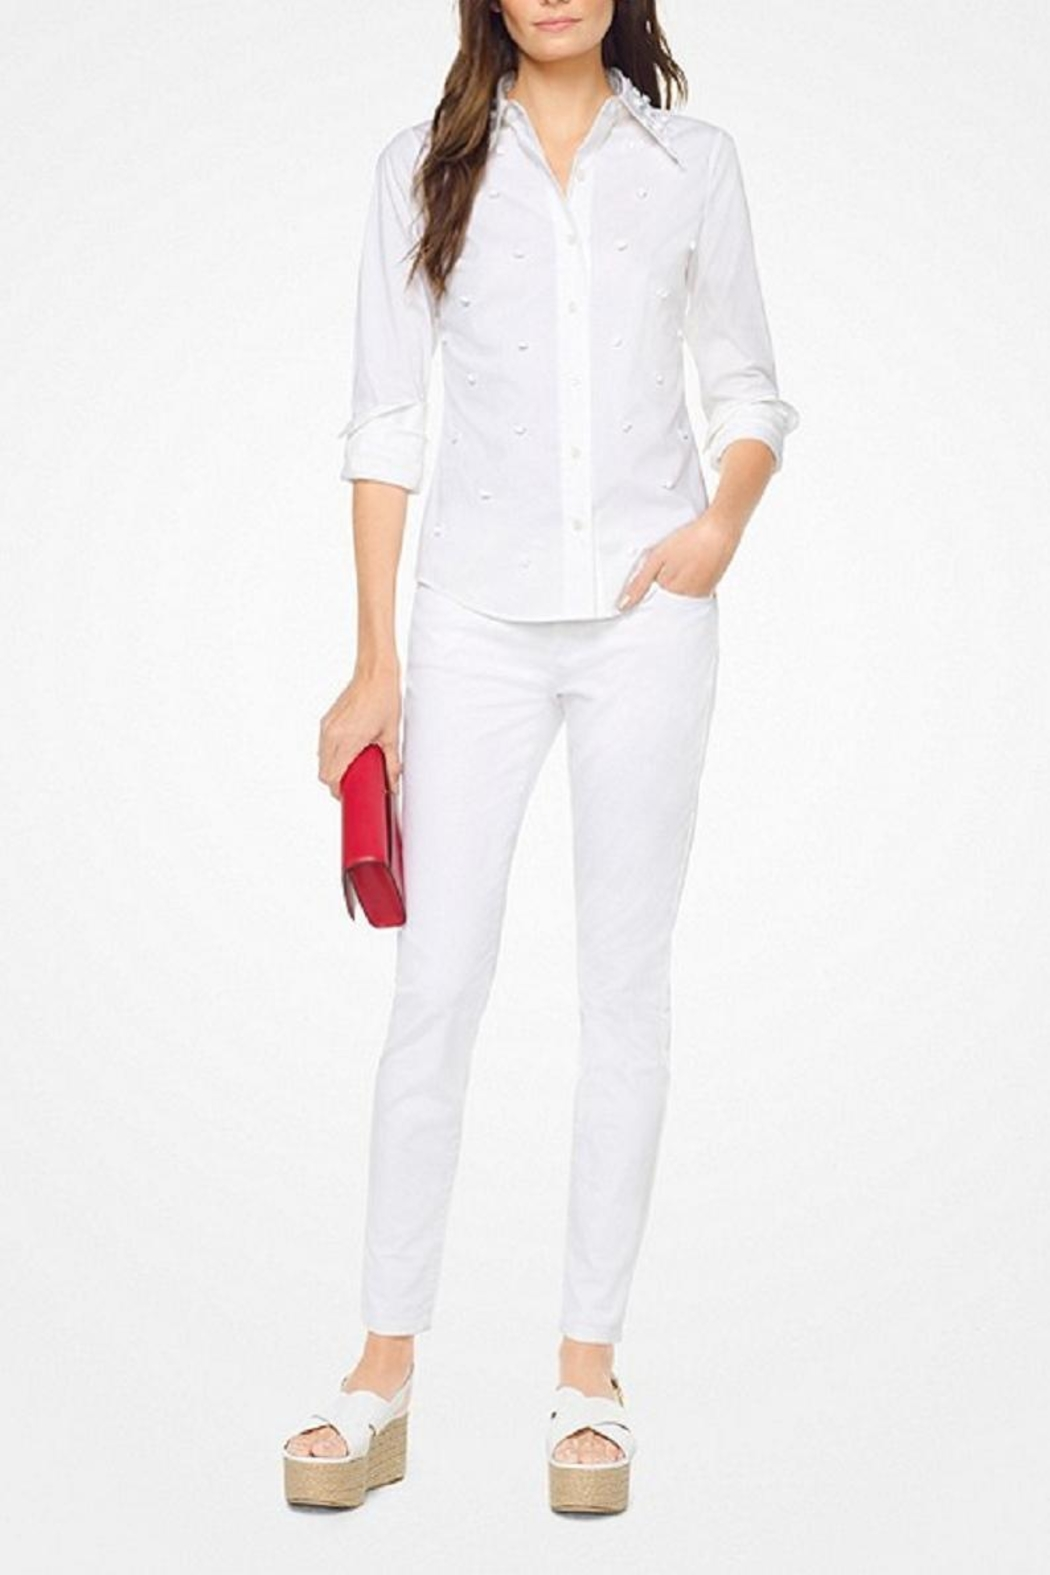 Michael Kors Floral-Embroidered-Cotton-Poplin Shirt - Main Image